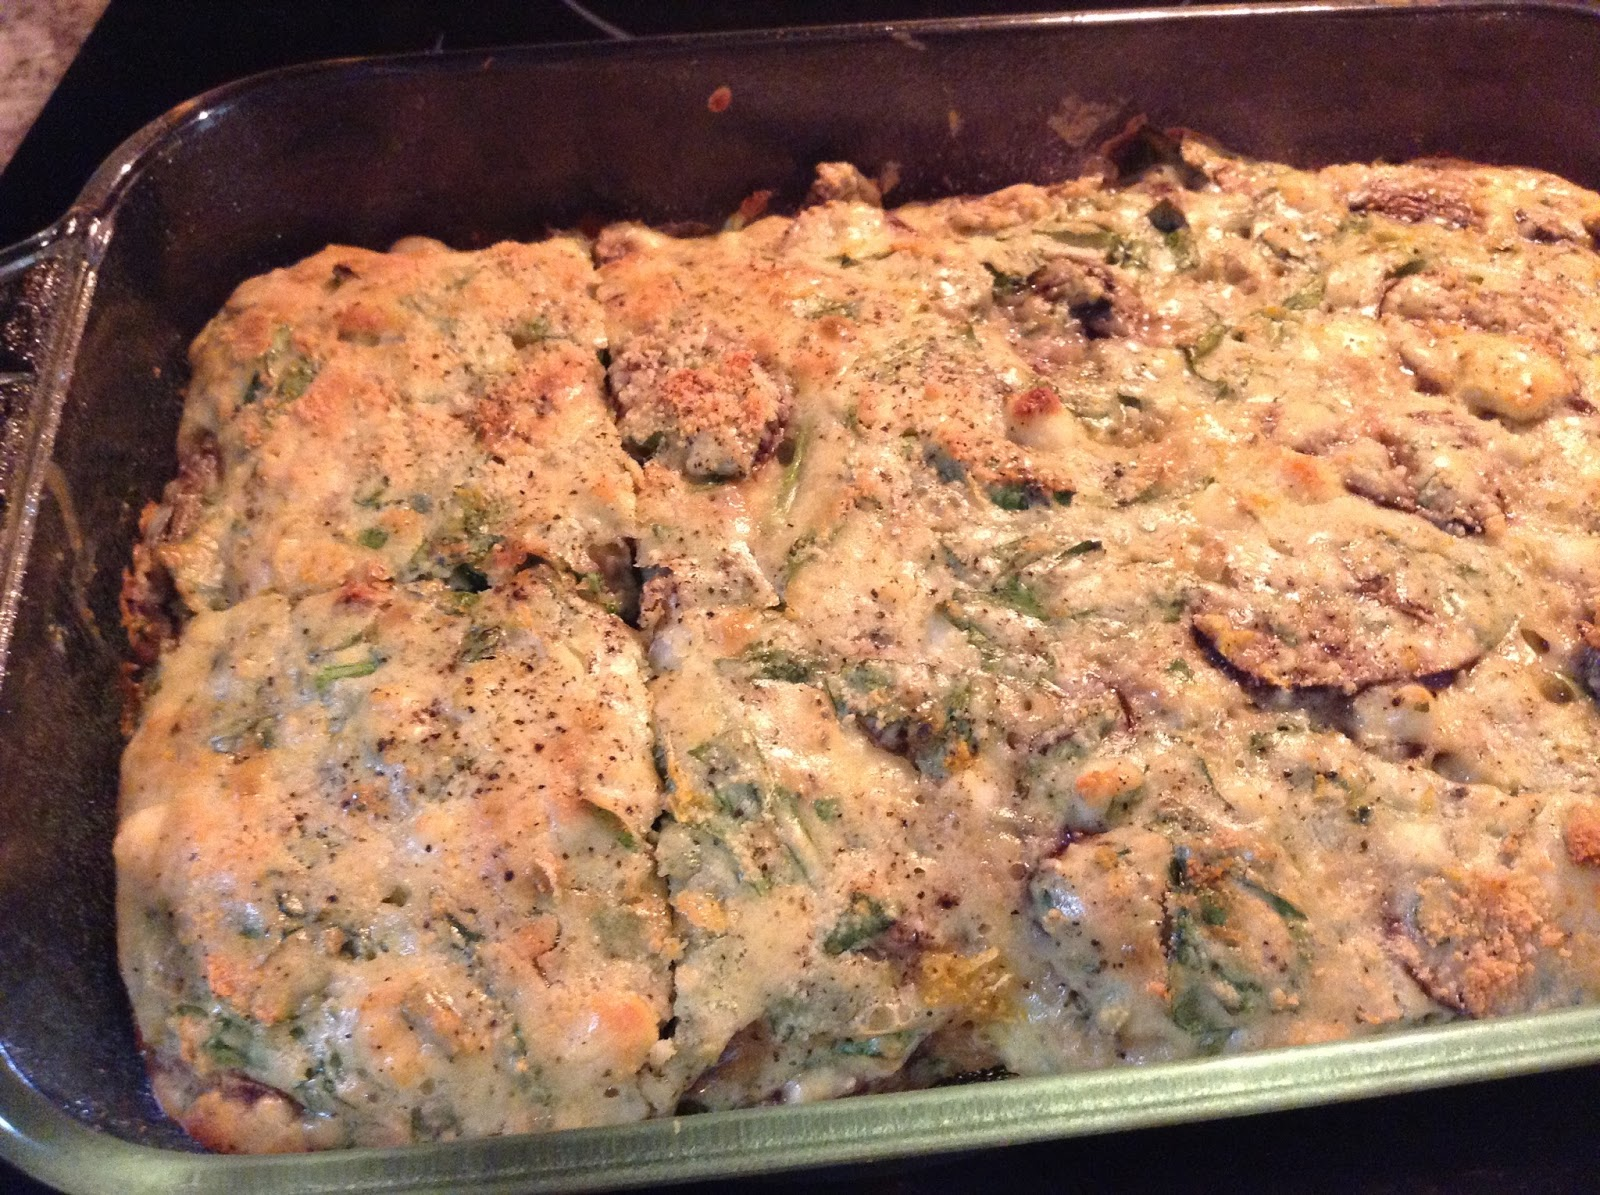 ... Life: Meatless Monday - Spinach, Mushroom & Feta Cheese Casserole